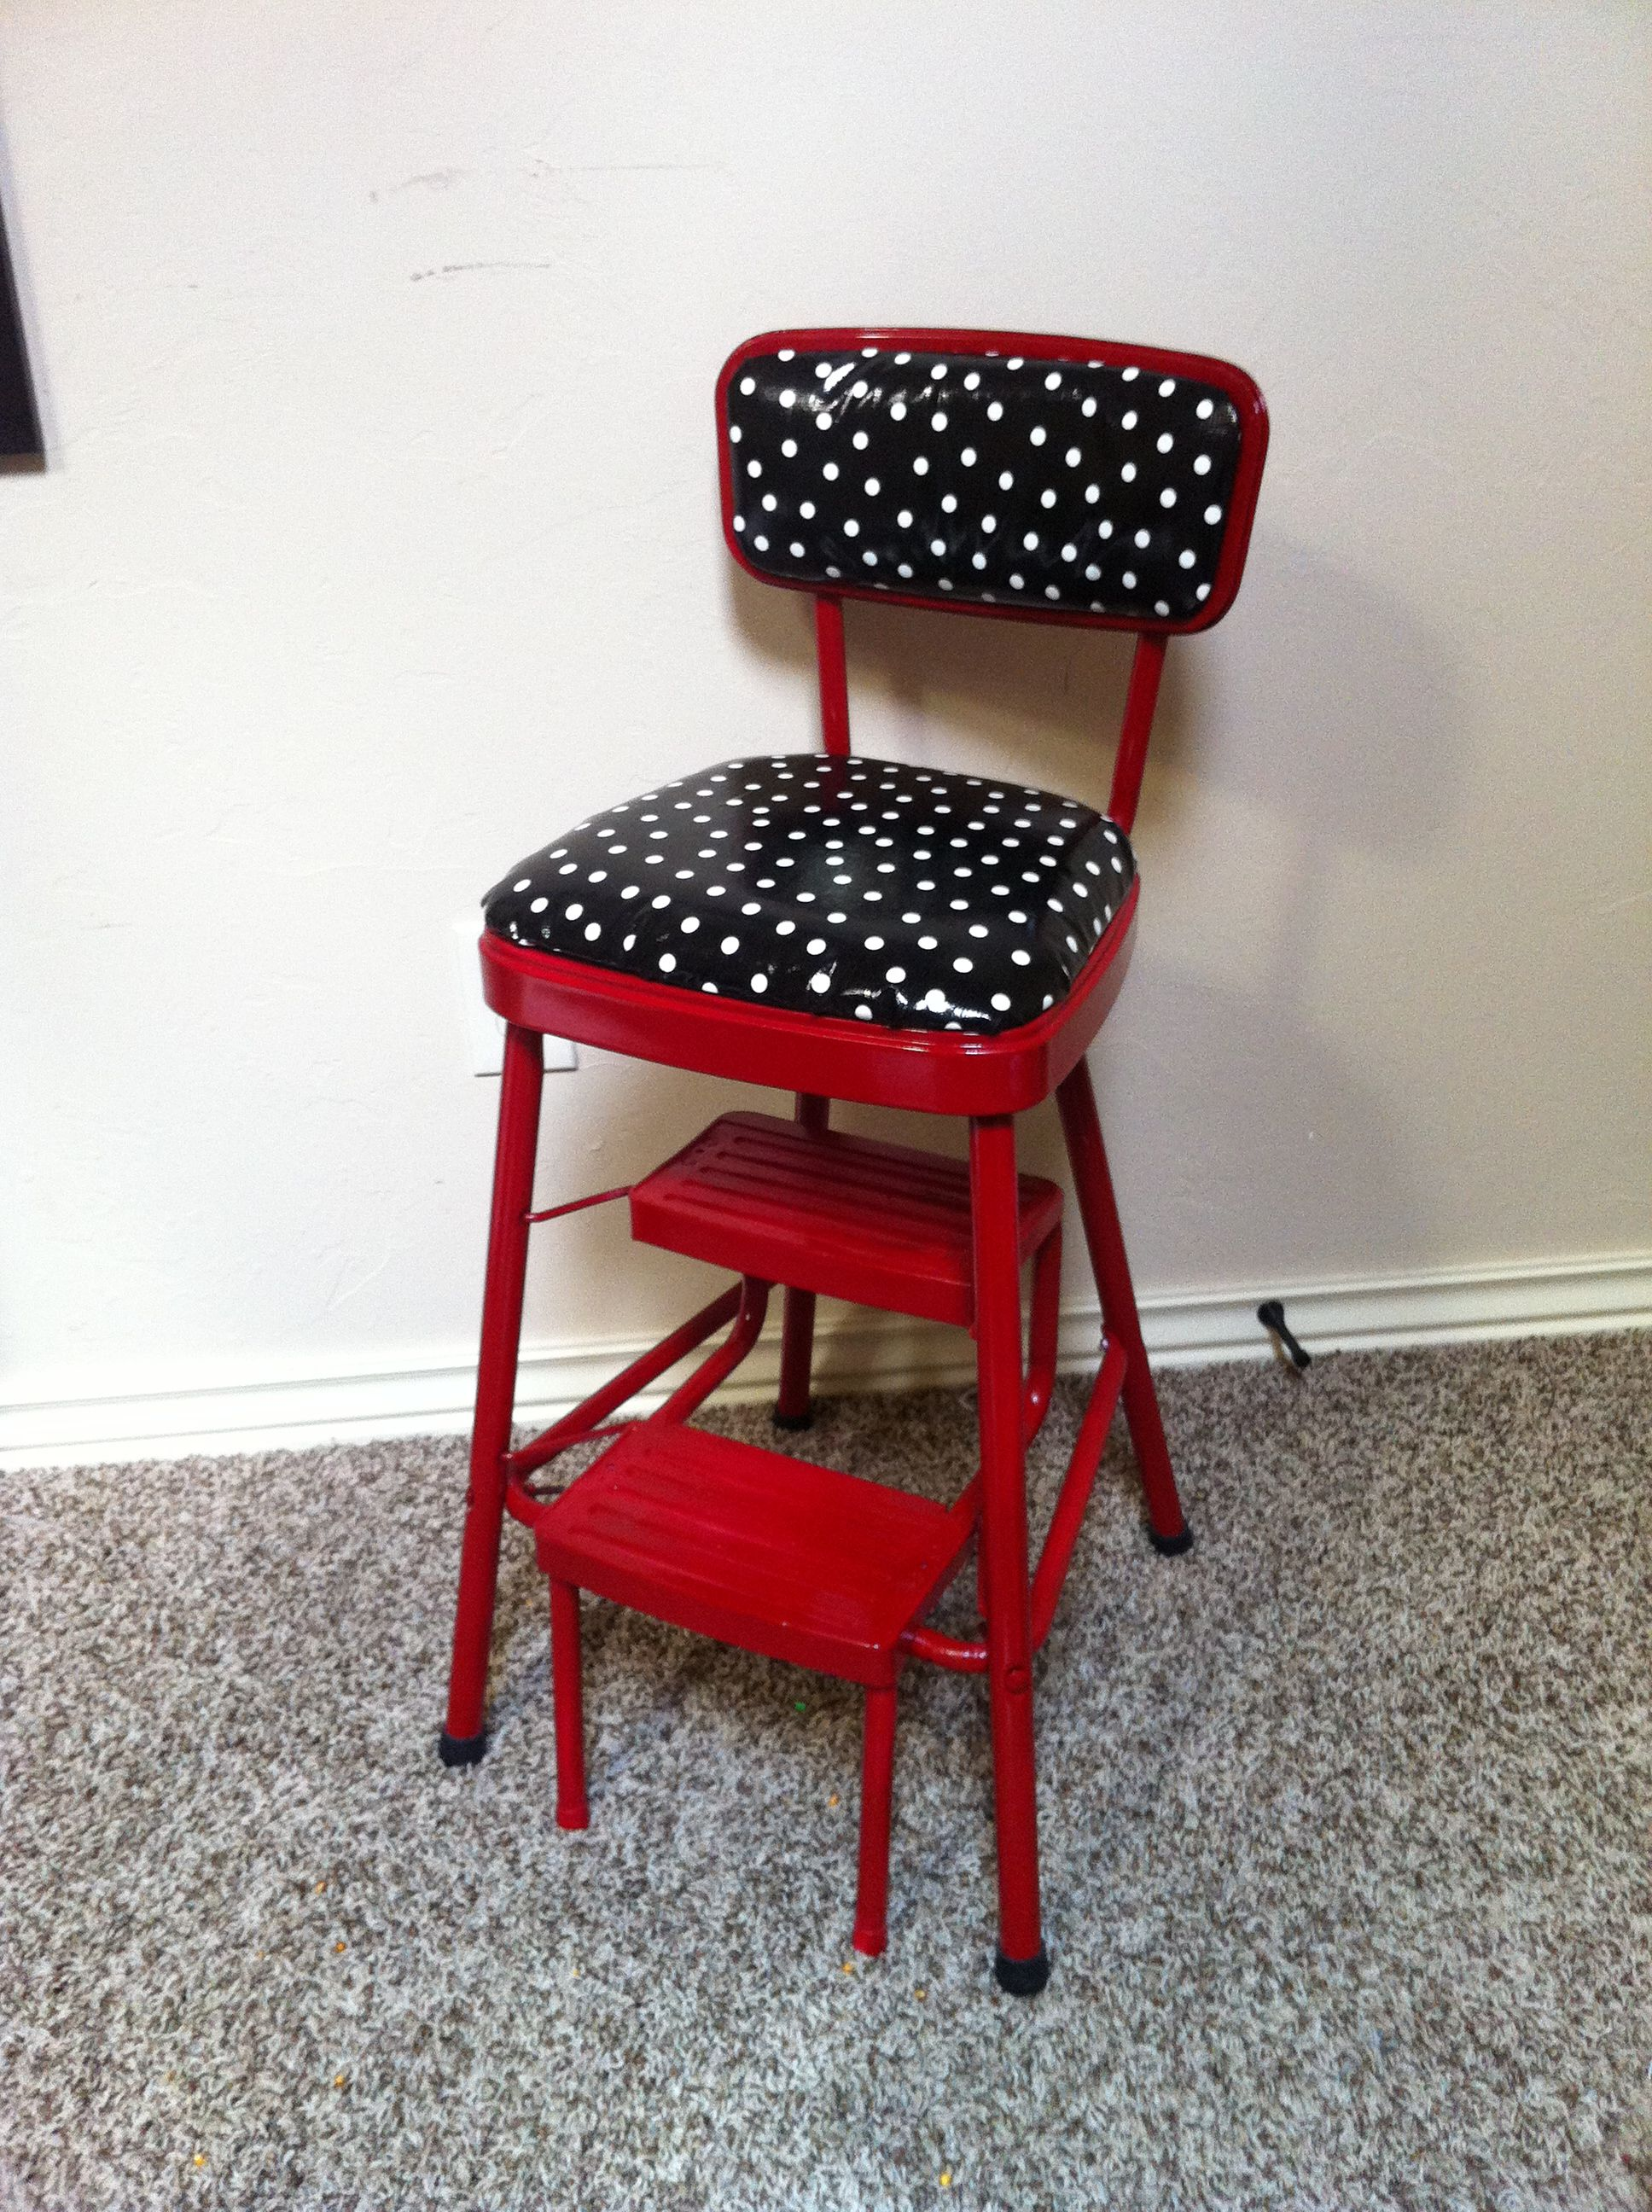 Redo On Retro Kitchen Step Stool Chair In Red And Black